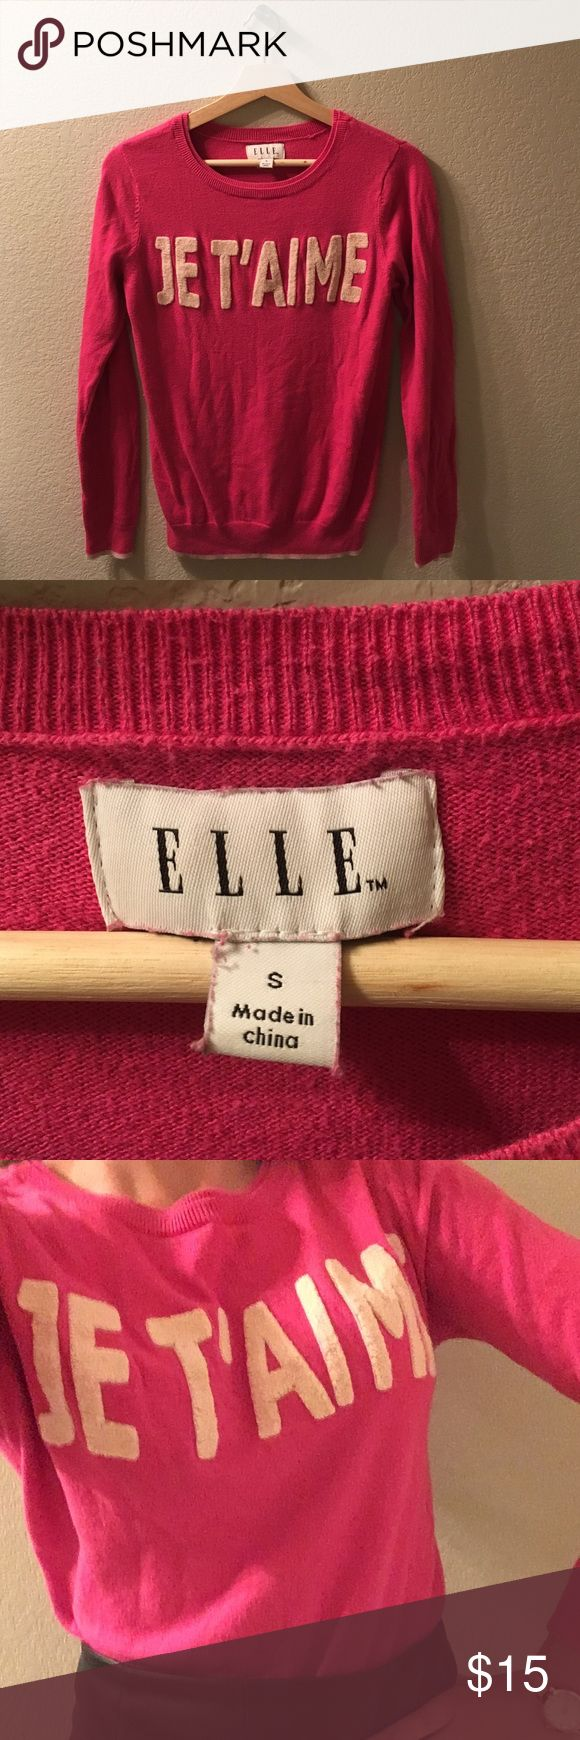 """Hot pink """"JE T'AIME"""" sweater. (Jet'aime means I love you in French.) This sweater is especially cute with collared shirts underneath it and with black, high-wasted skirts. Elle  Sweaters Crew & Scoop Necks"""